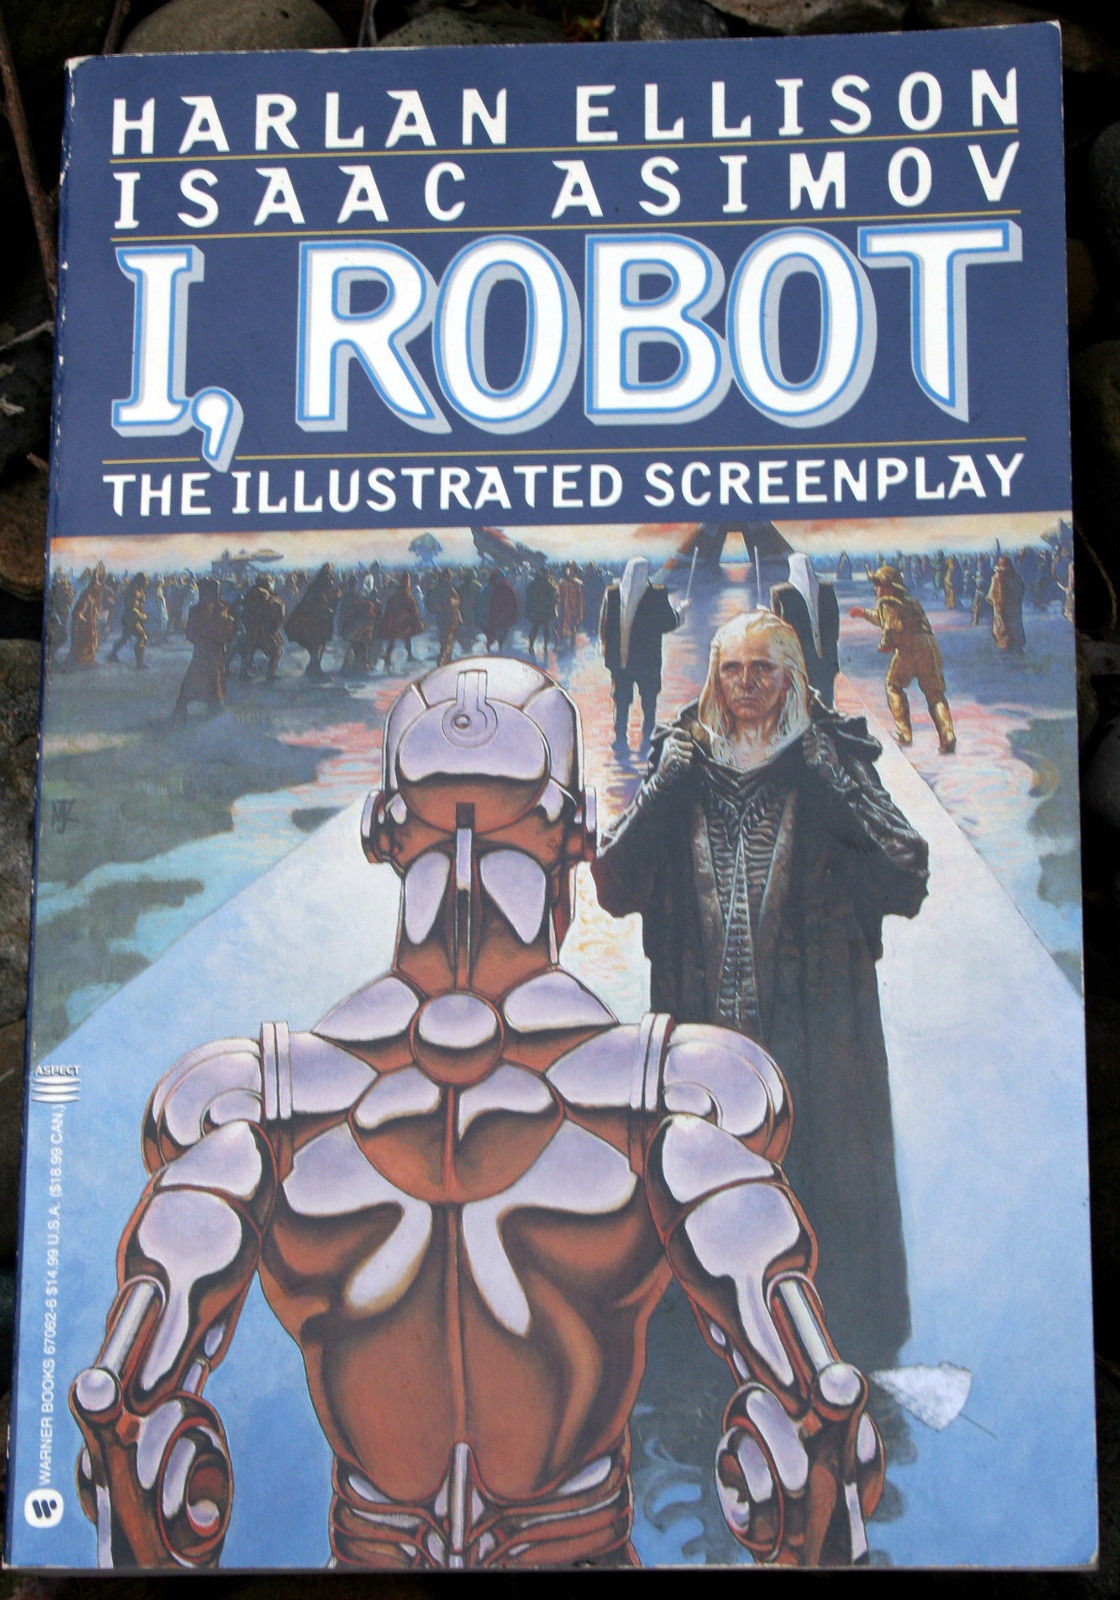 Primary image for i, ROBOT: THE ILLUSTRATED SCREENPLAY Ellison/Asimov 1994 True FP